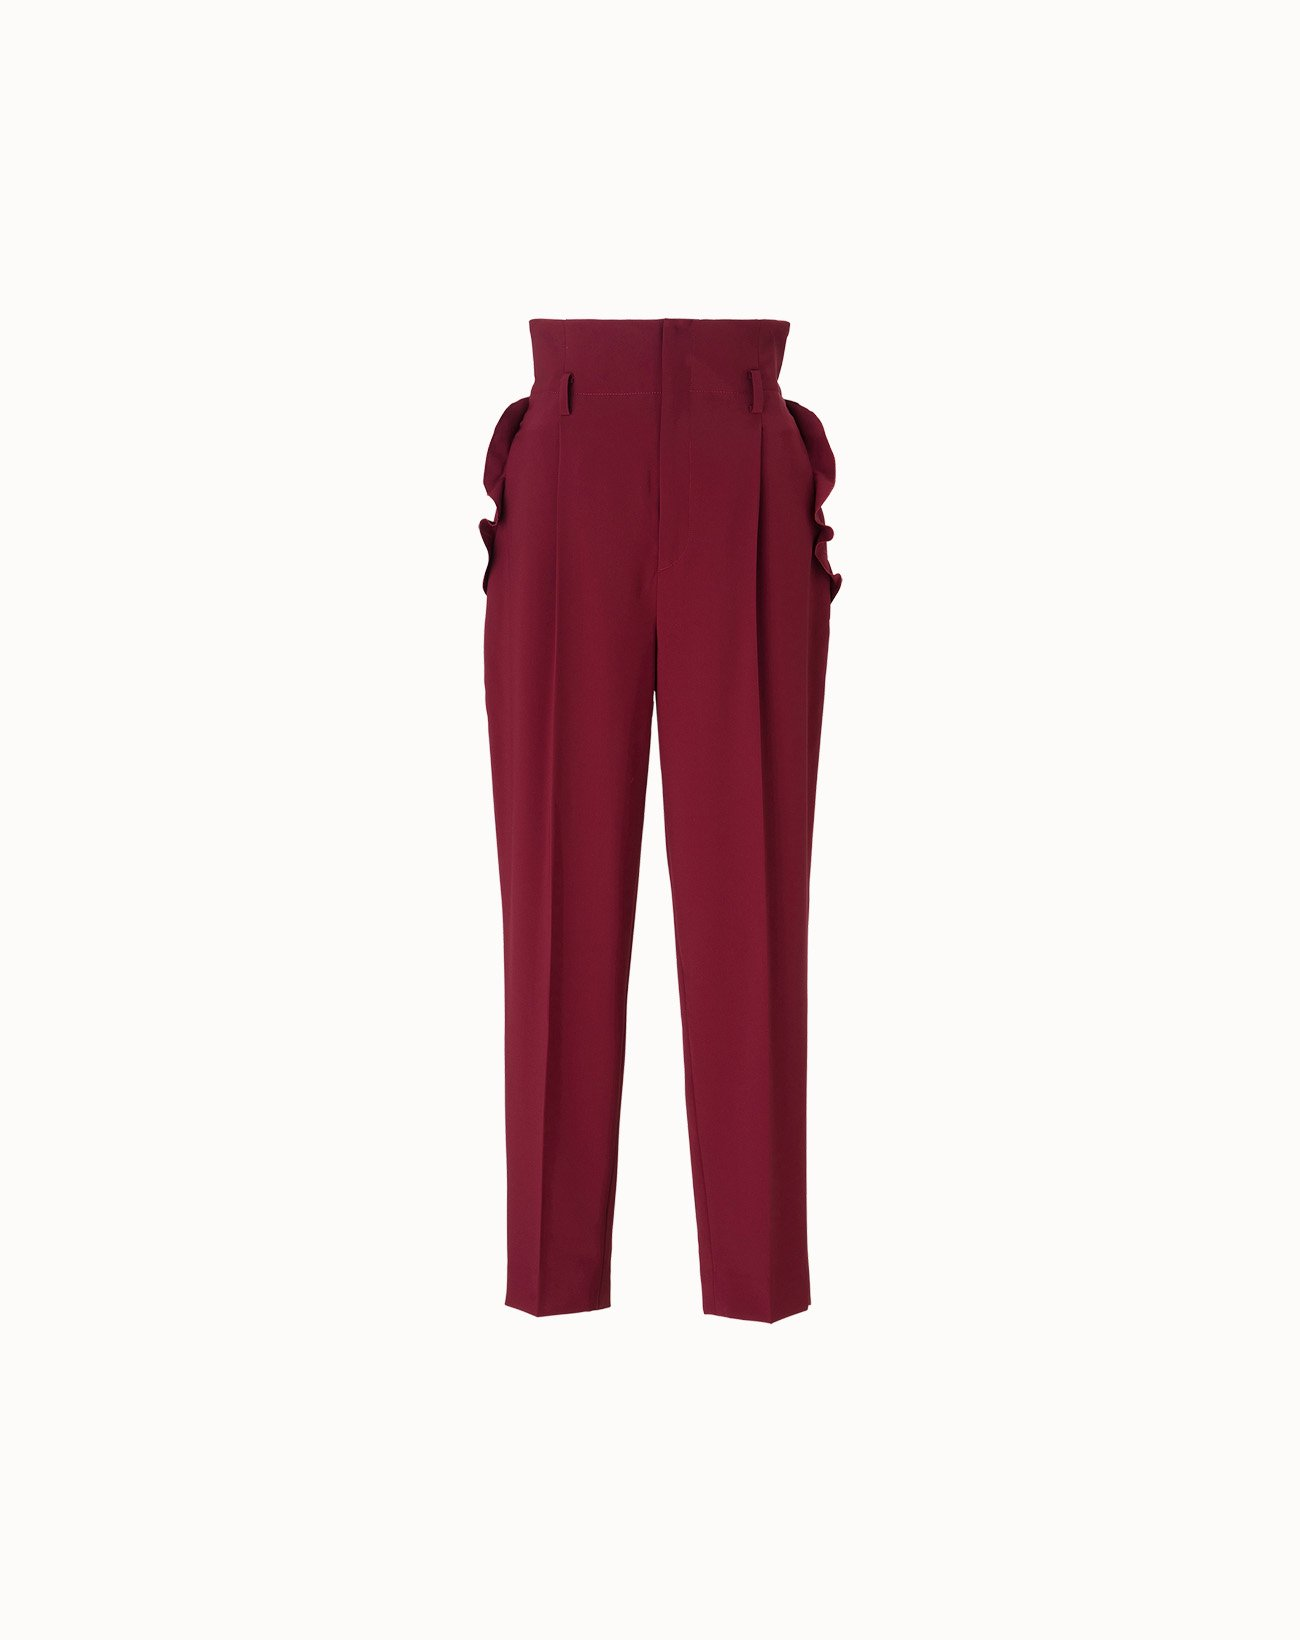 leur logette - Wonder Stretch Pants - Bordeaux